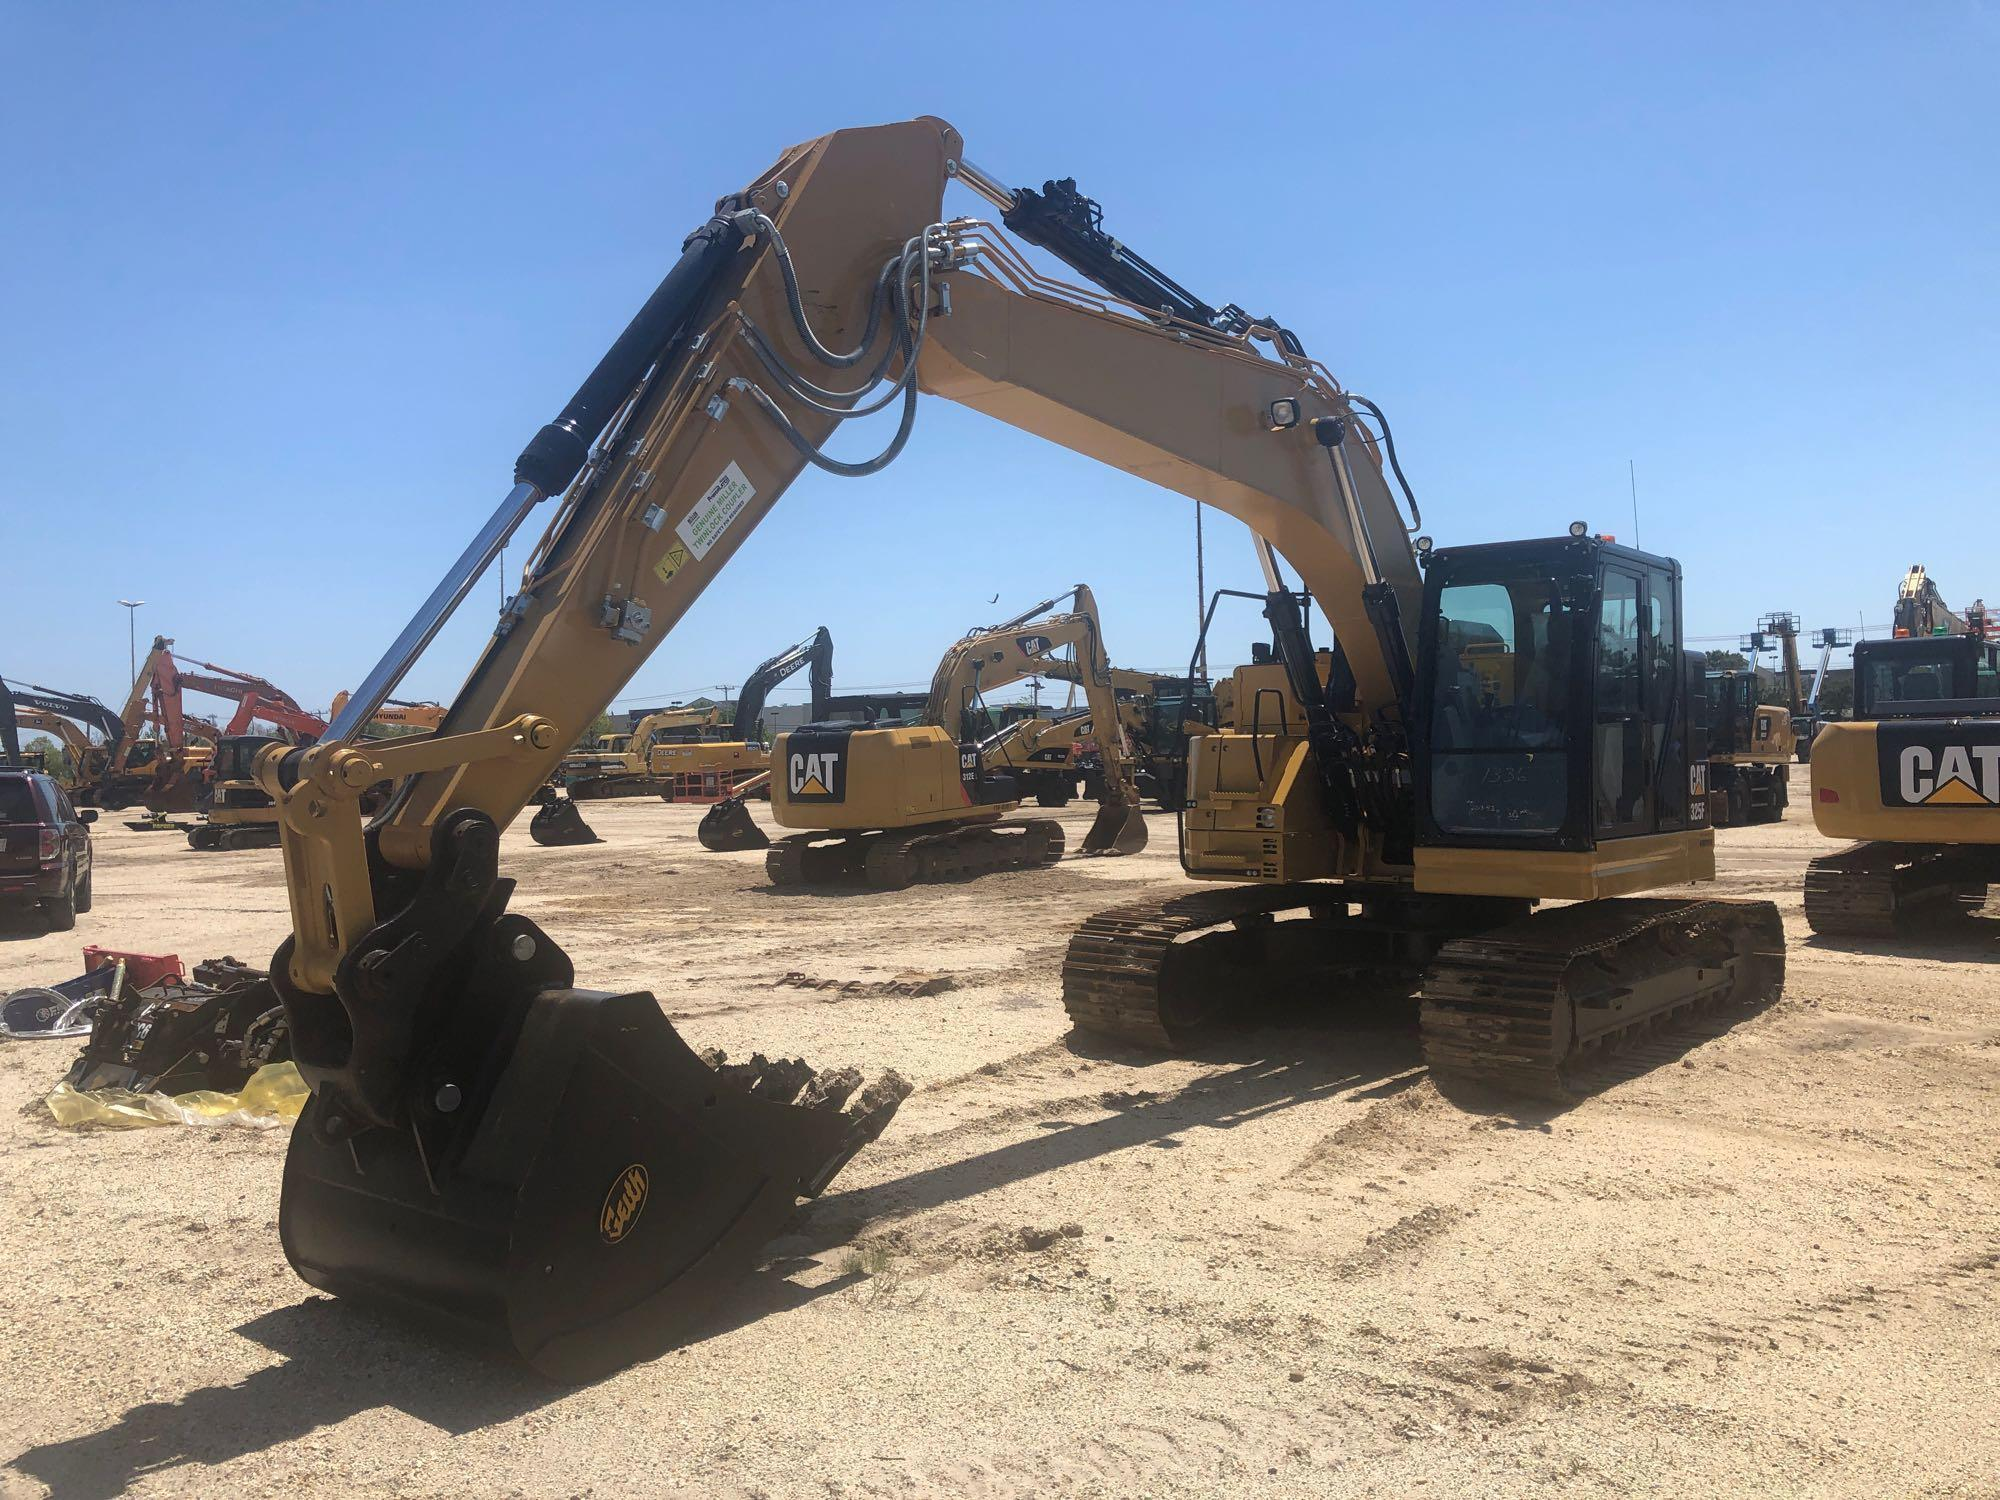 DEMO CAT 325FLCR HYDRAULIC EXCAVATOR Powered By Cat